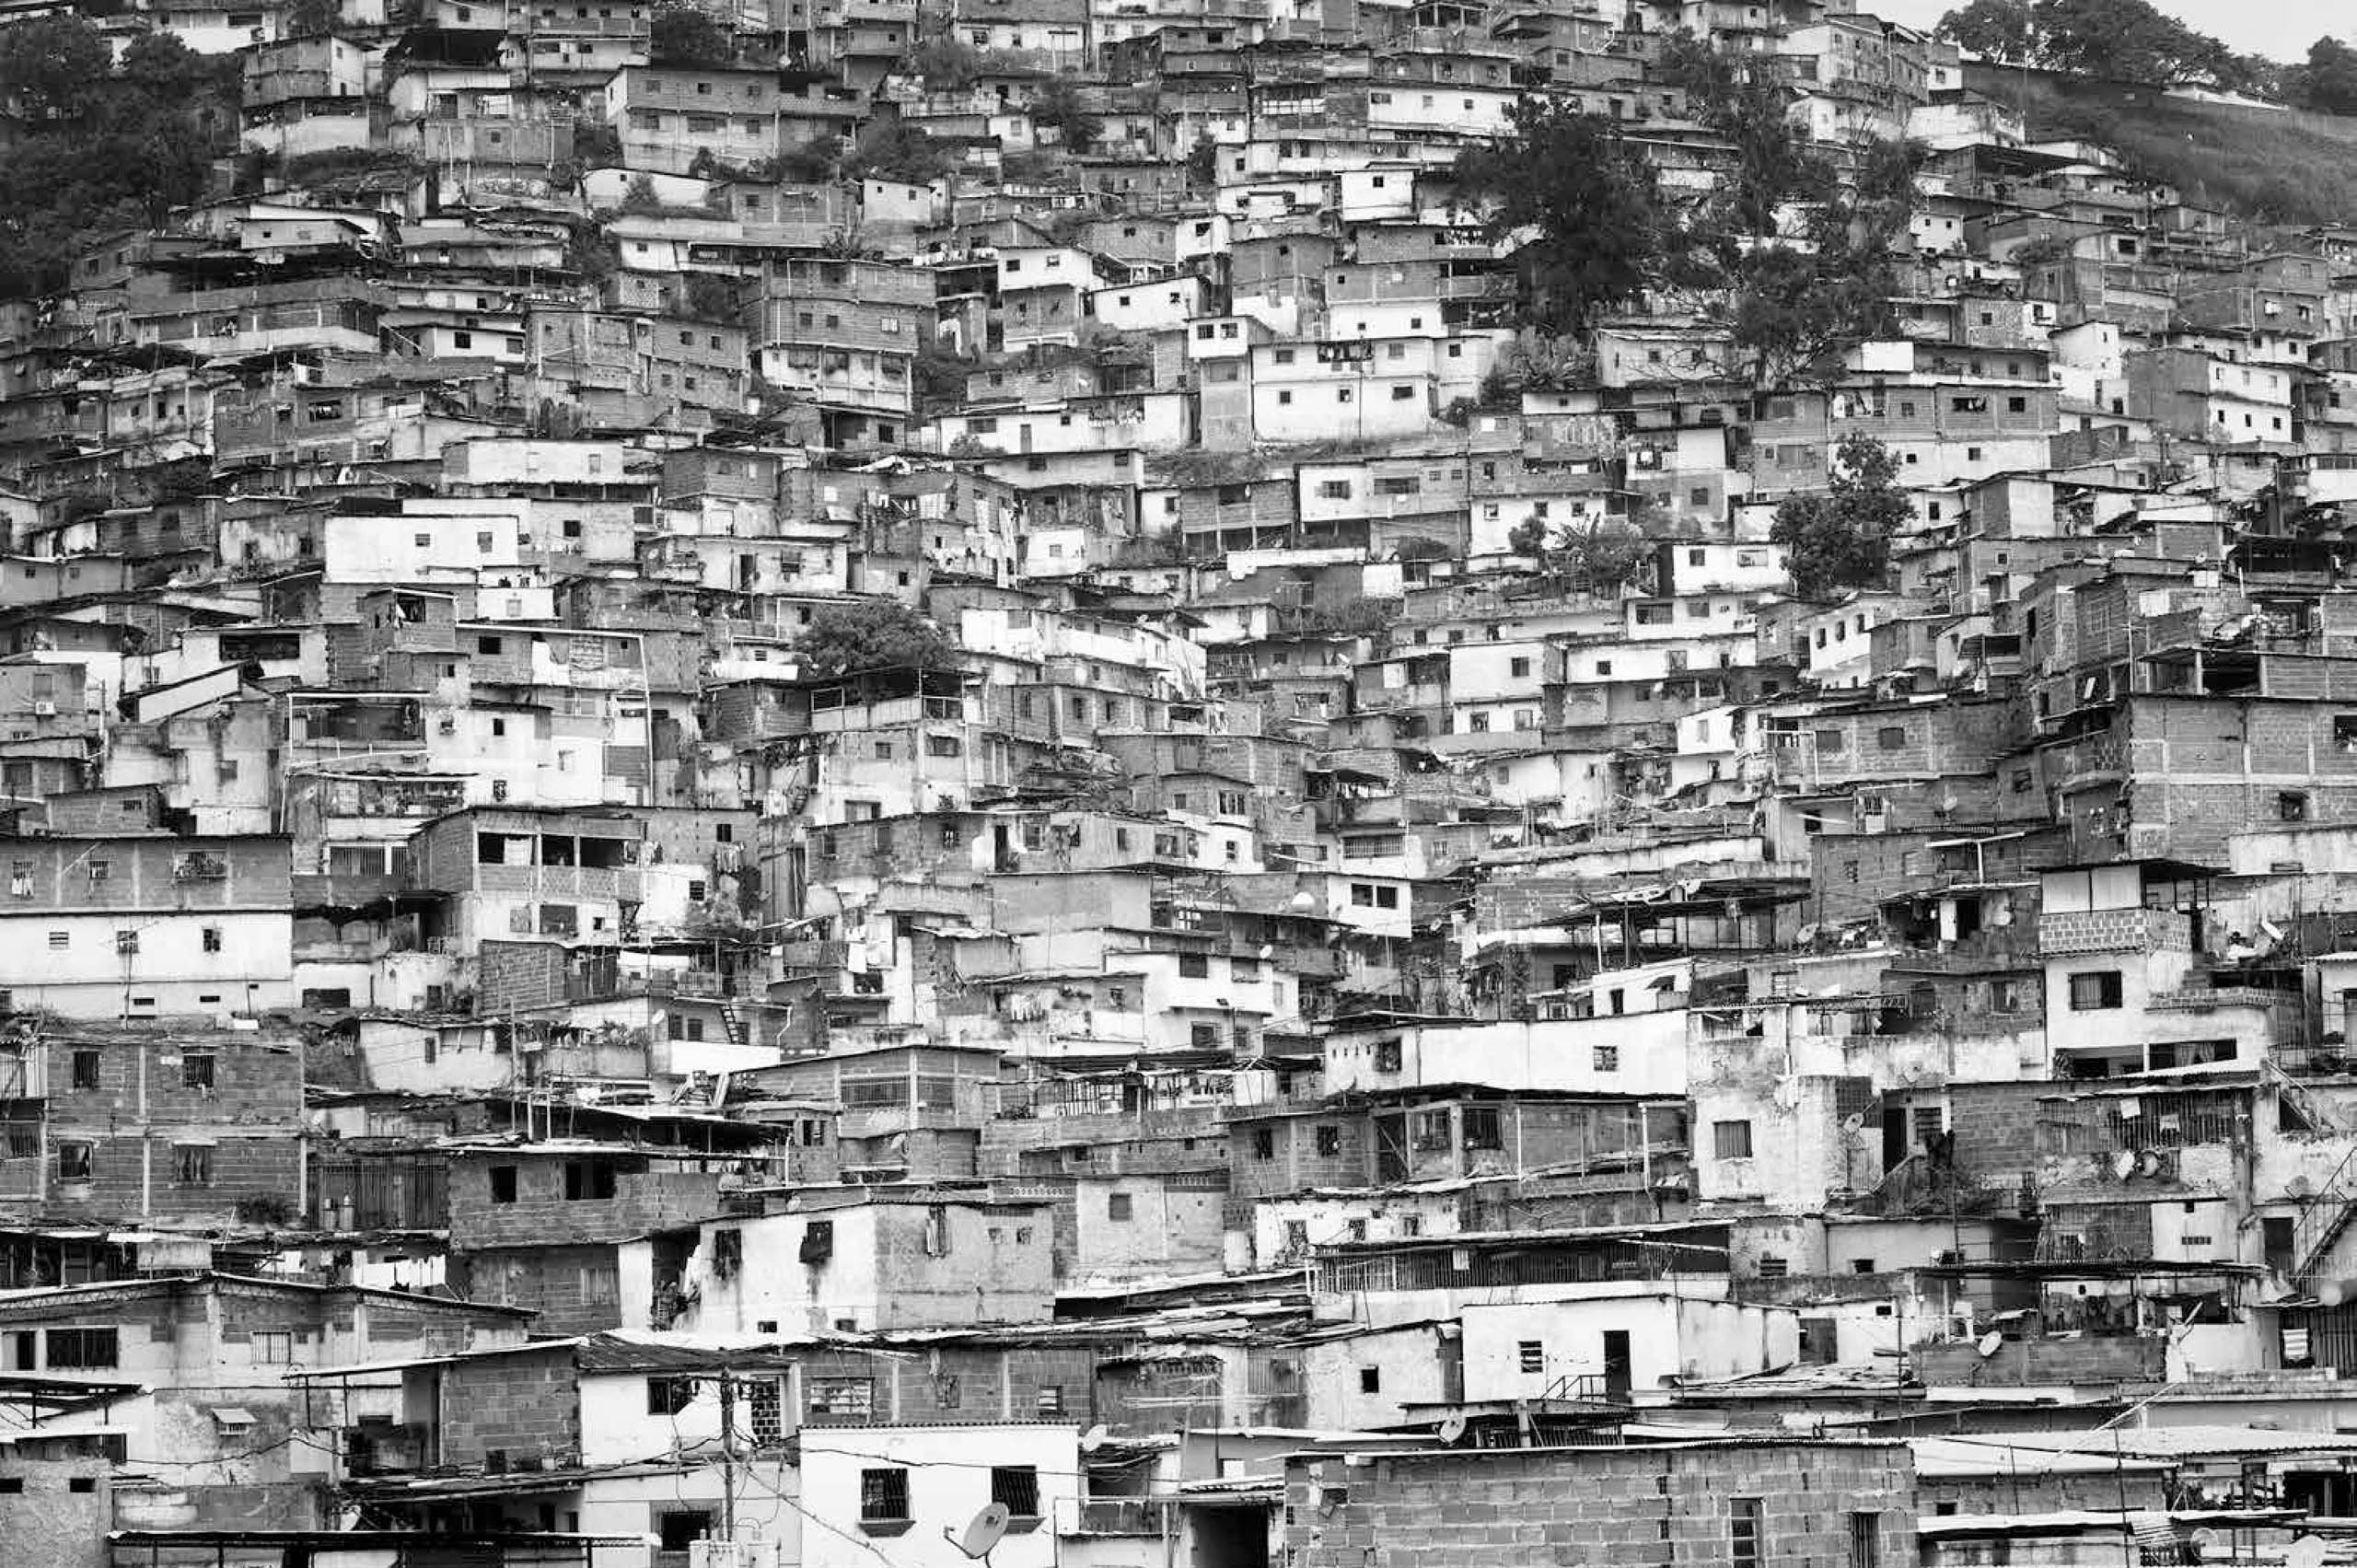 Catia  is one of the many slums in Caracas and a traditional stronghold of criminal gangs, known as colectivos. Supported by the government of President Hugo Chavez, the  colectivos became ideologically left wing groups that helped serve the Bolivarian revolution, 2009.